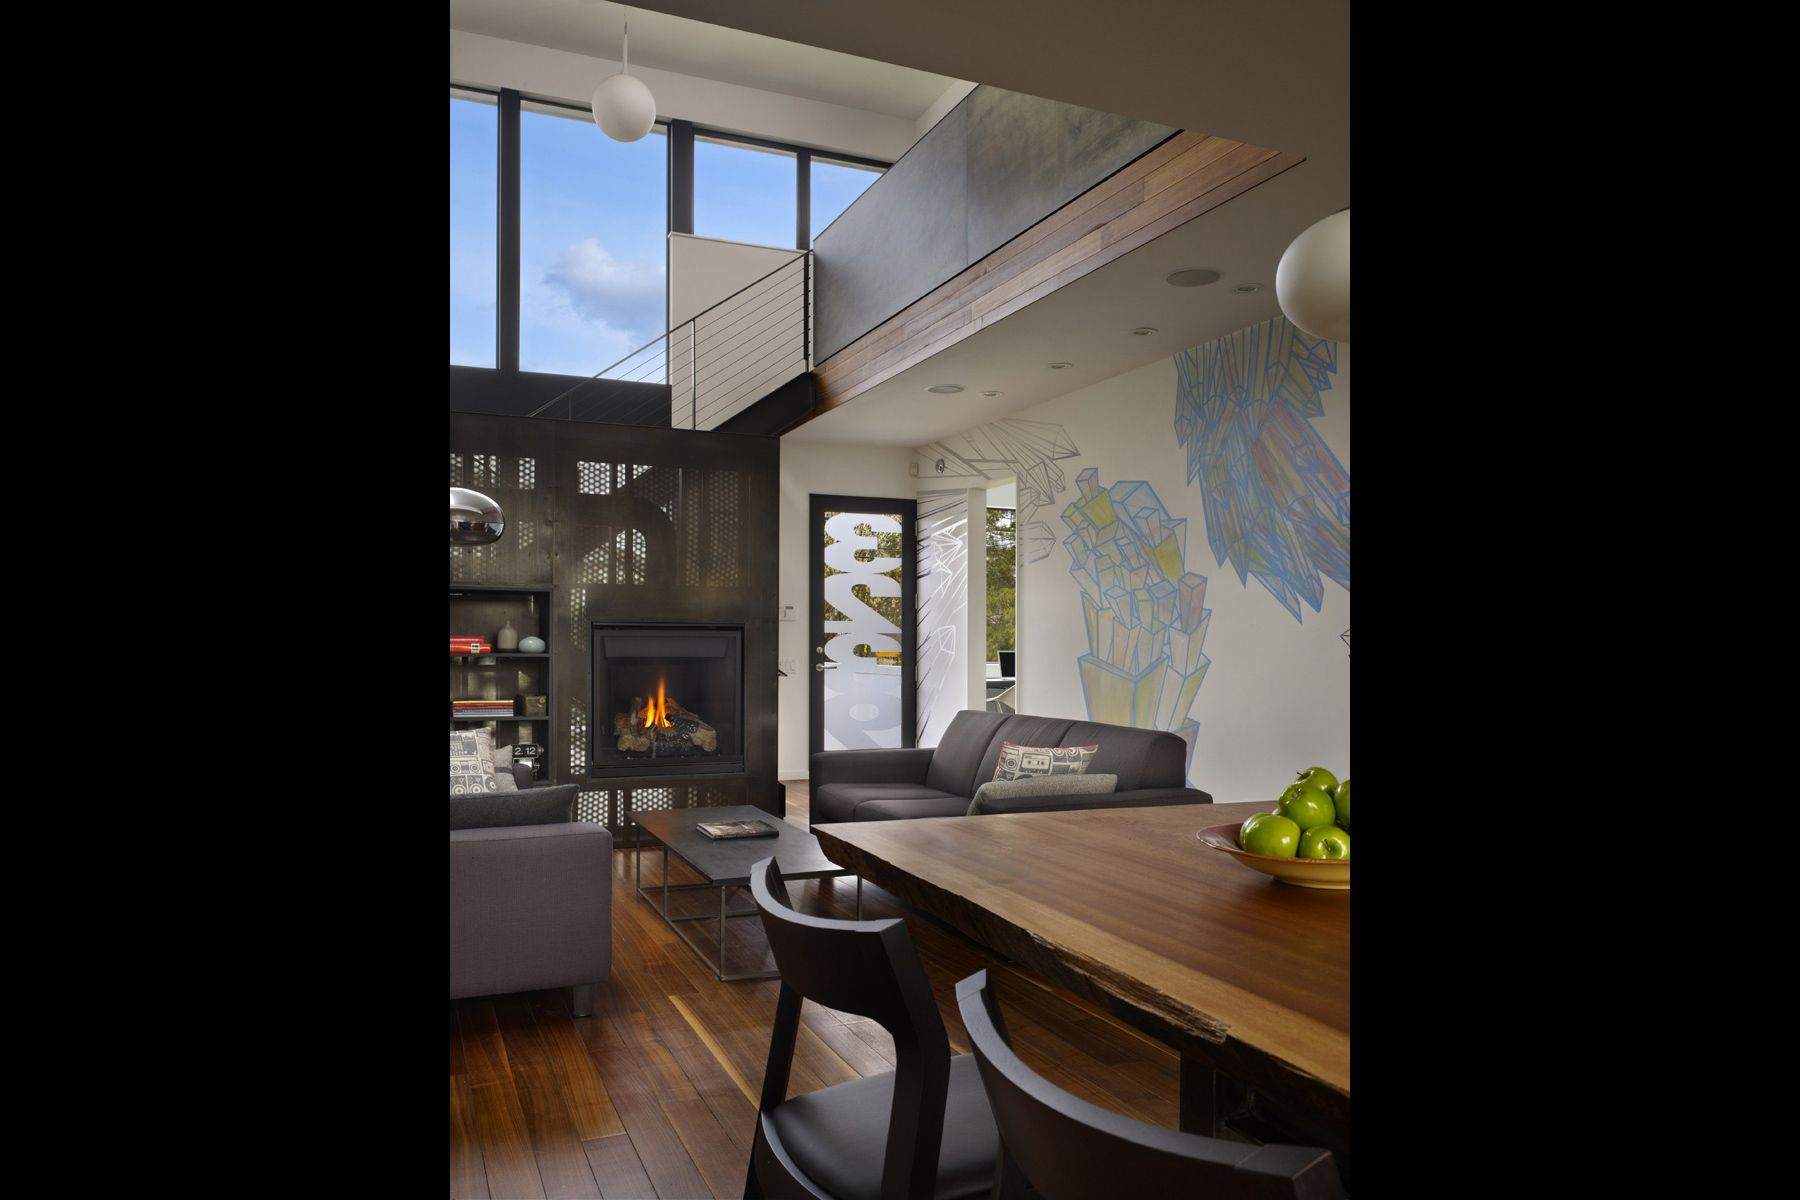 modern, mural, interior, dining, fireplace, home